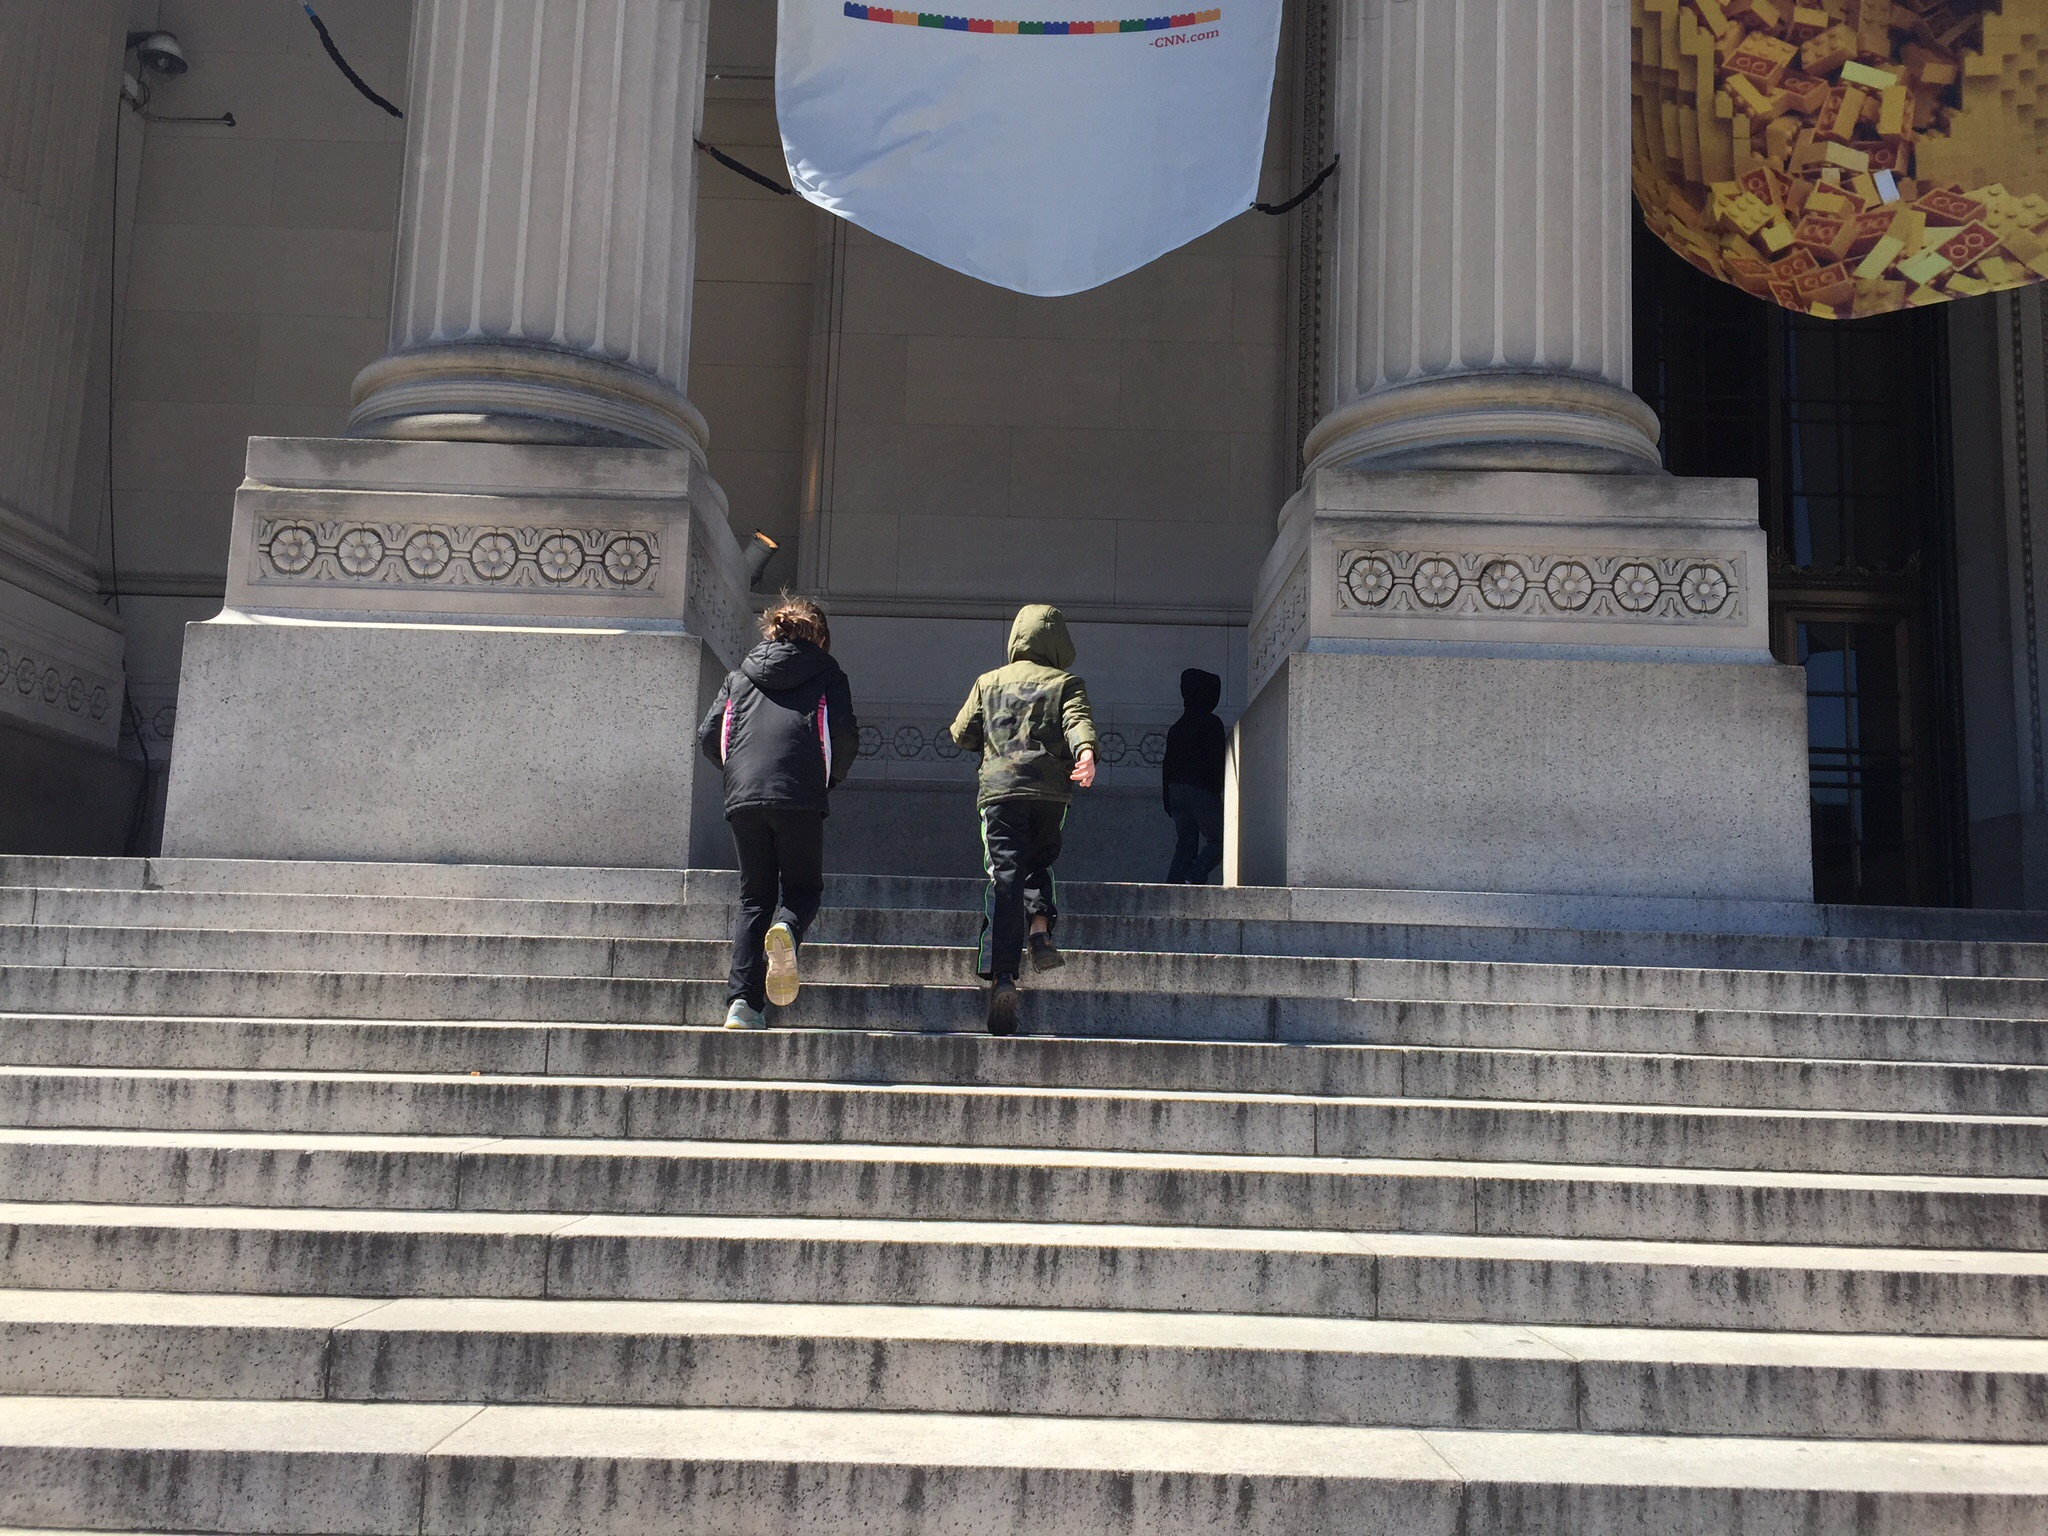 Running up the stairs of the Franklin Institute